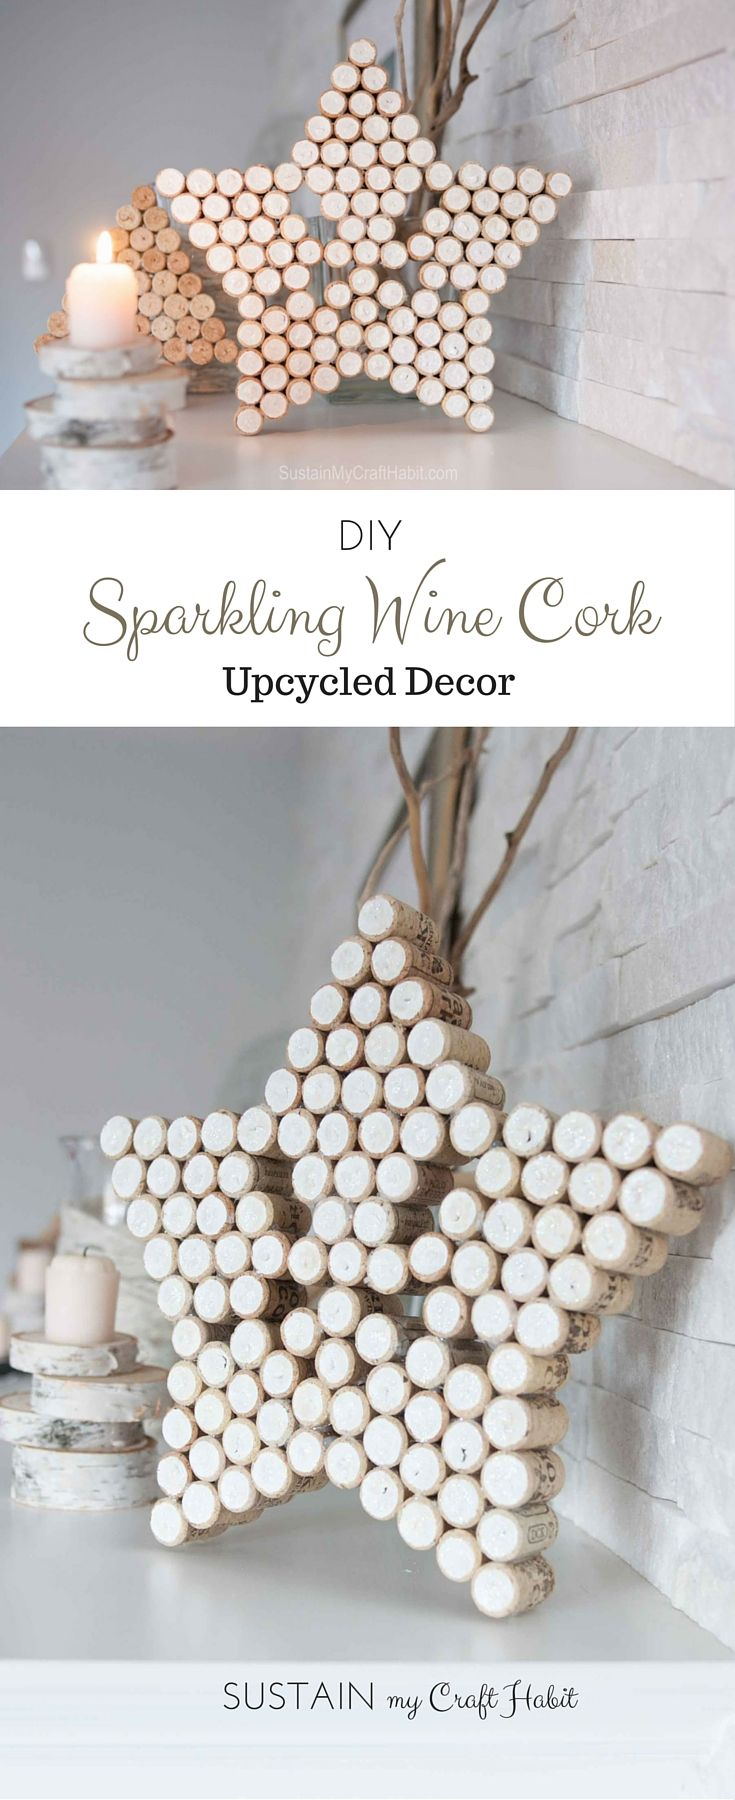 best 25+ cork ideas on pinterest | wine cork projects, wine cork